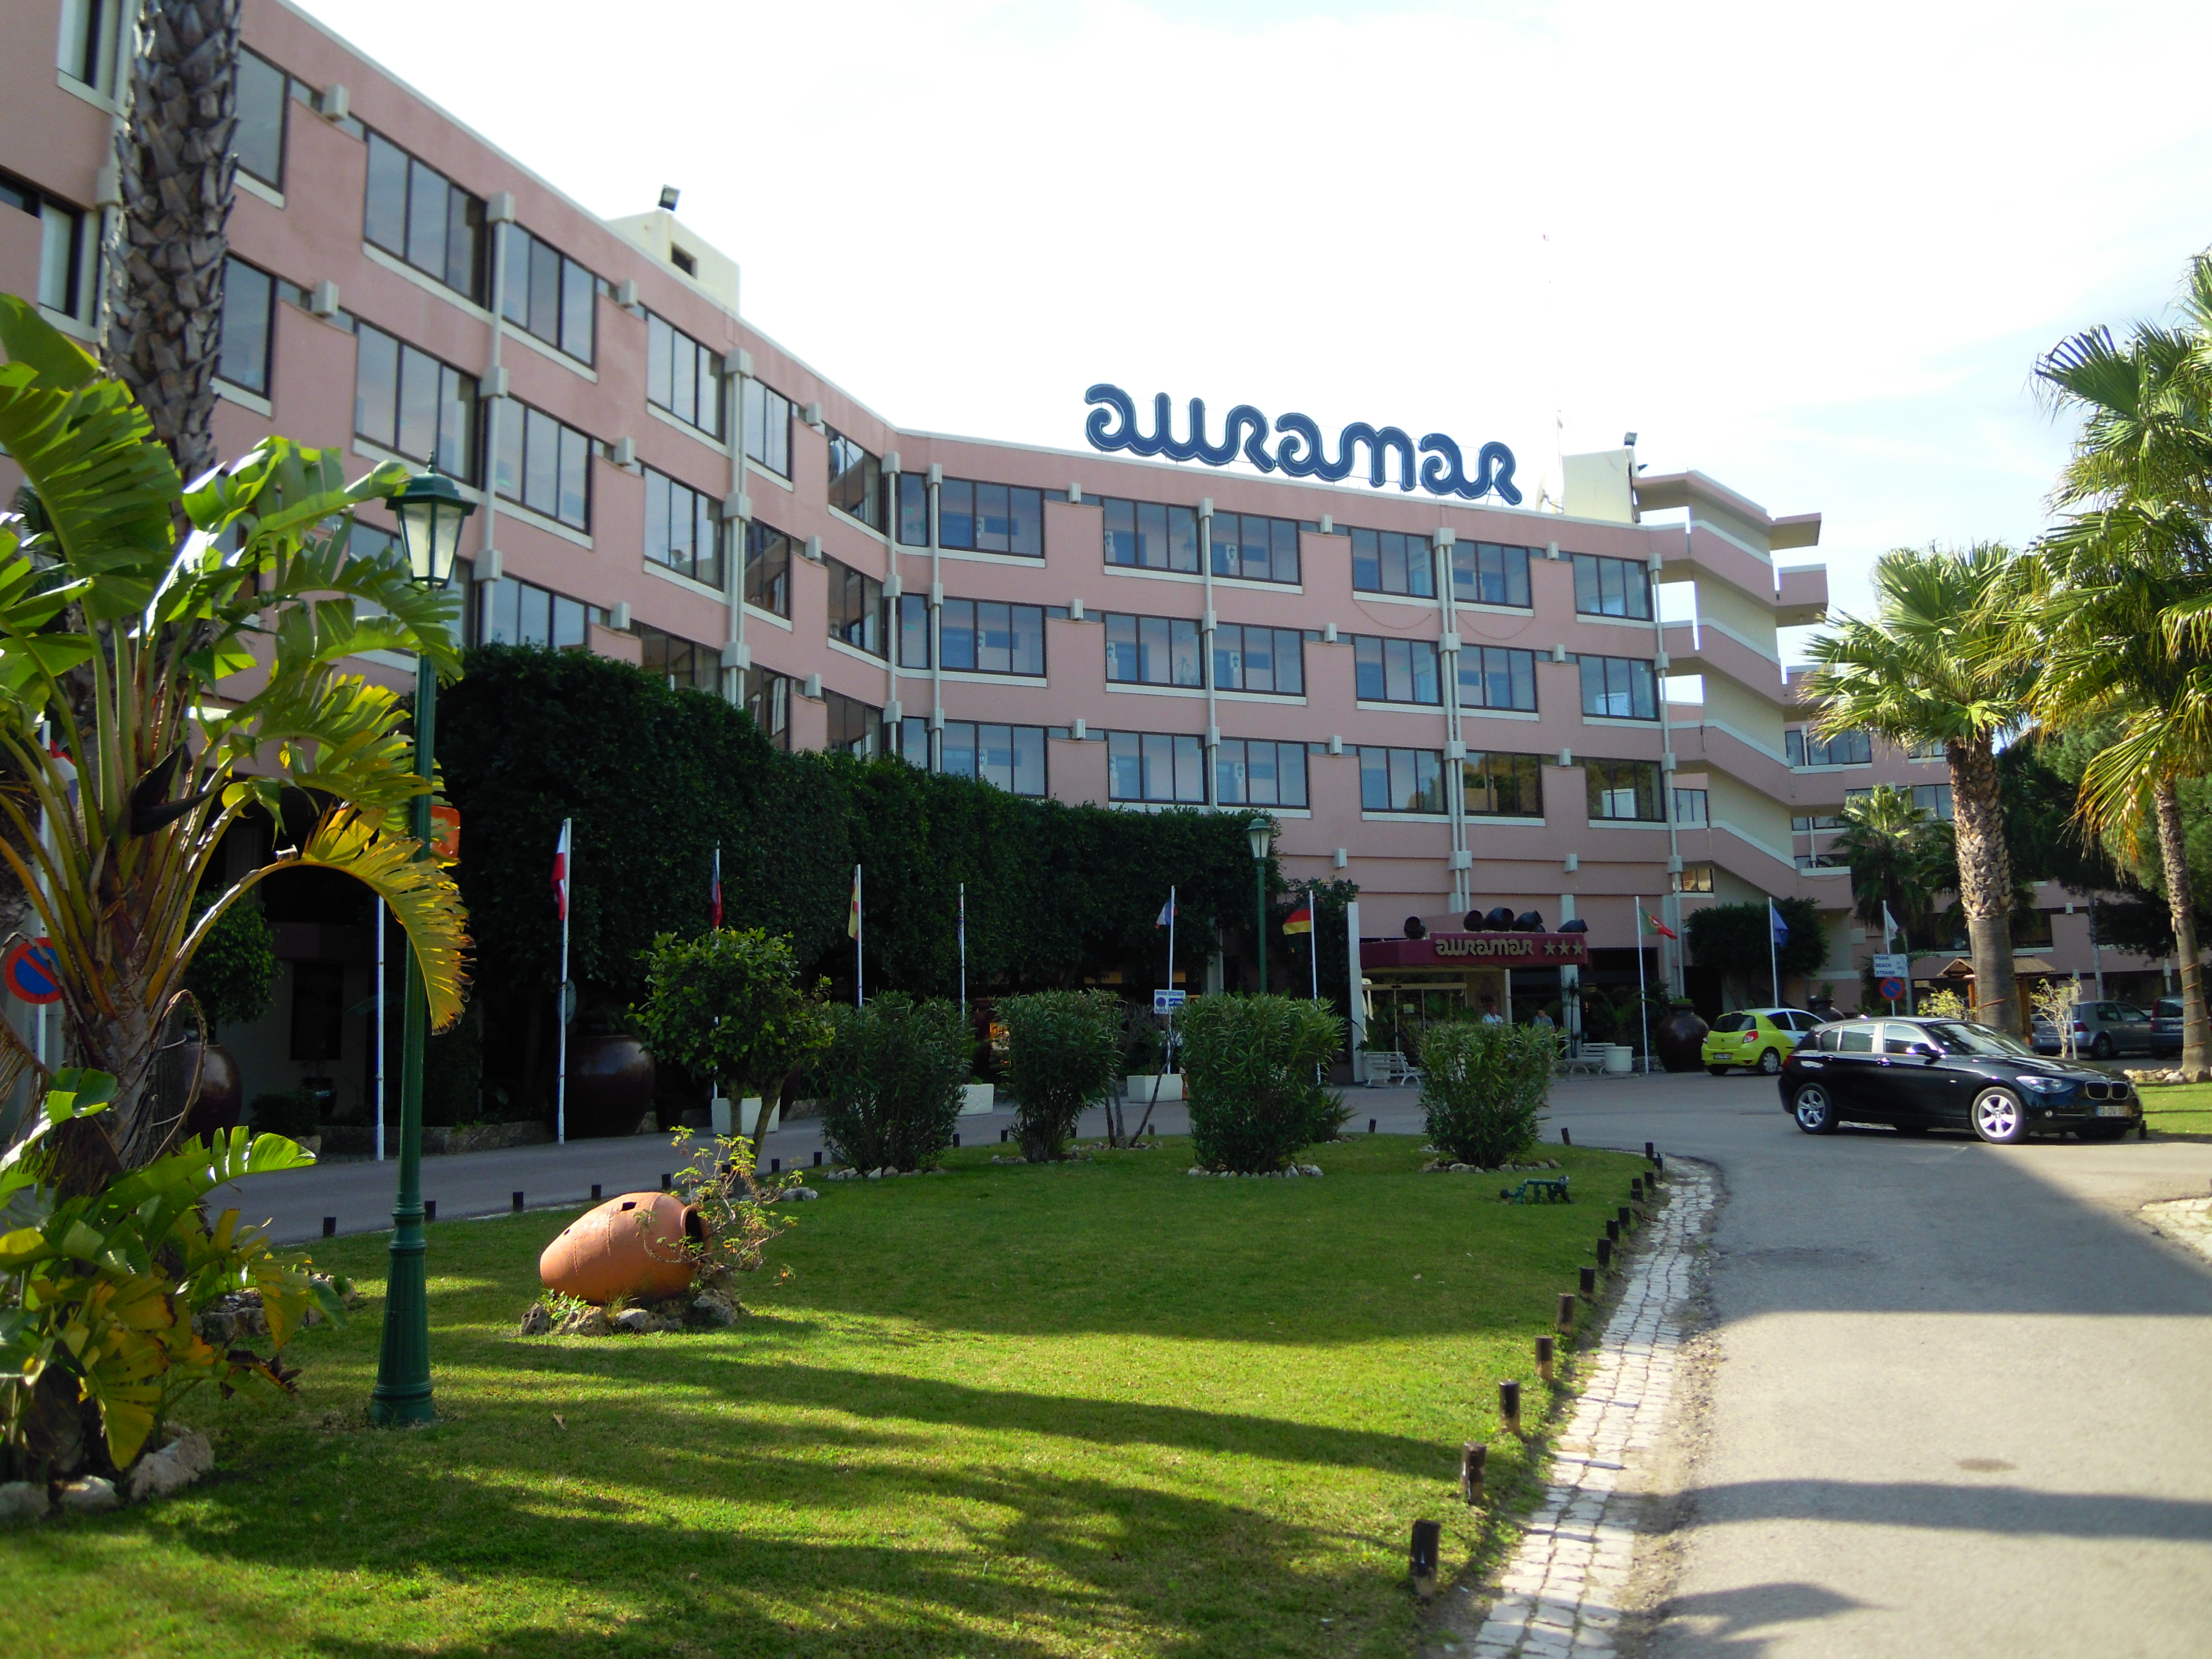 Albufeira Hotel And Spa